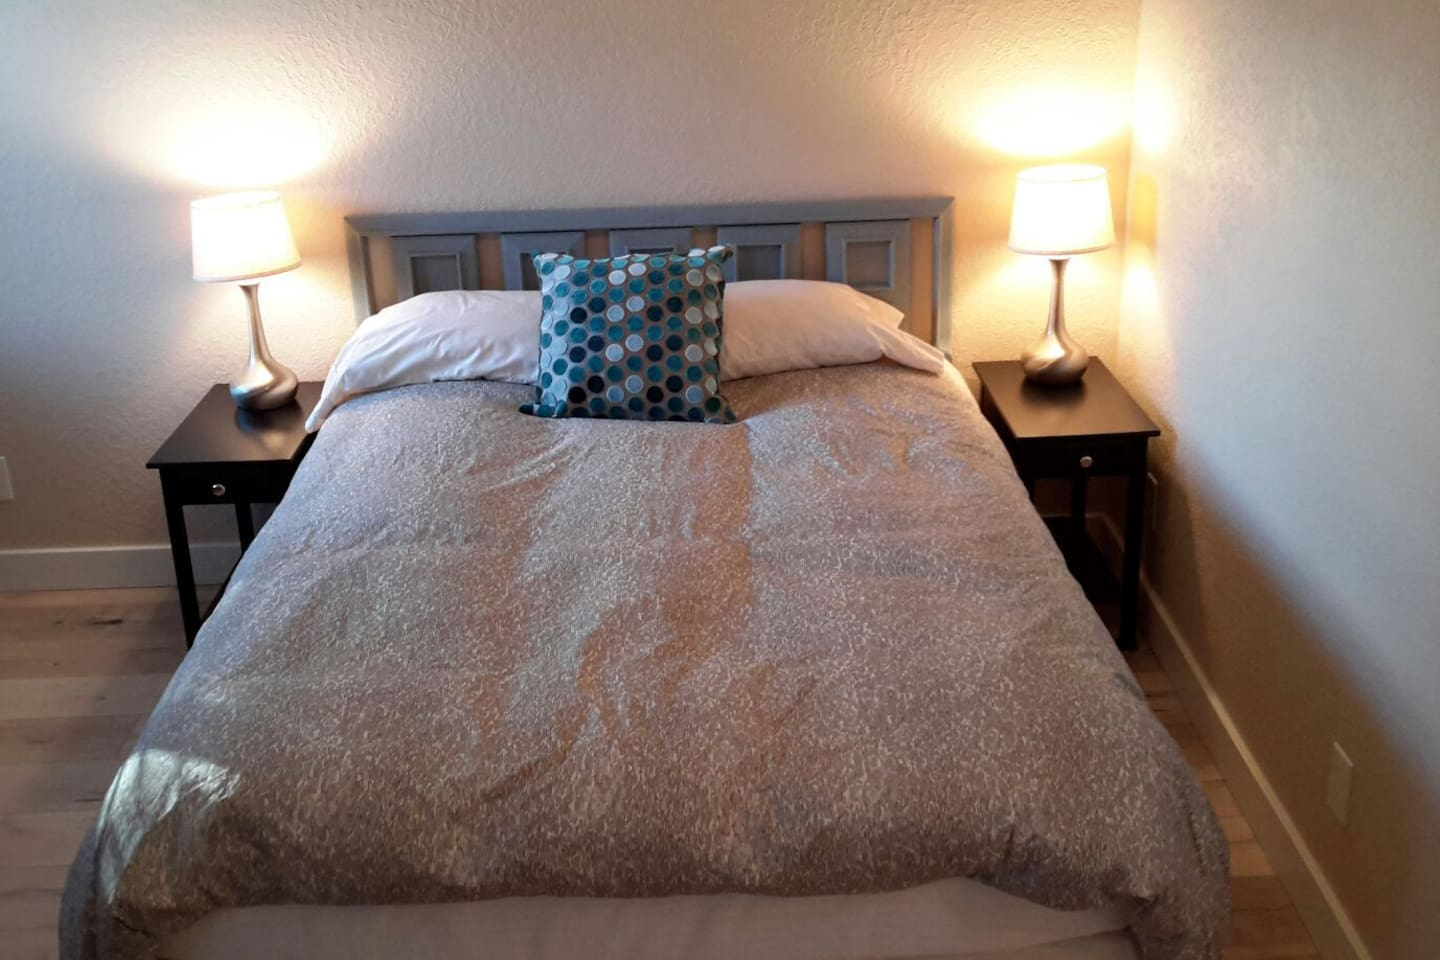 This is a comfortable queen bed, with cotton sheets.